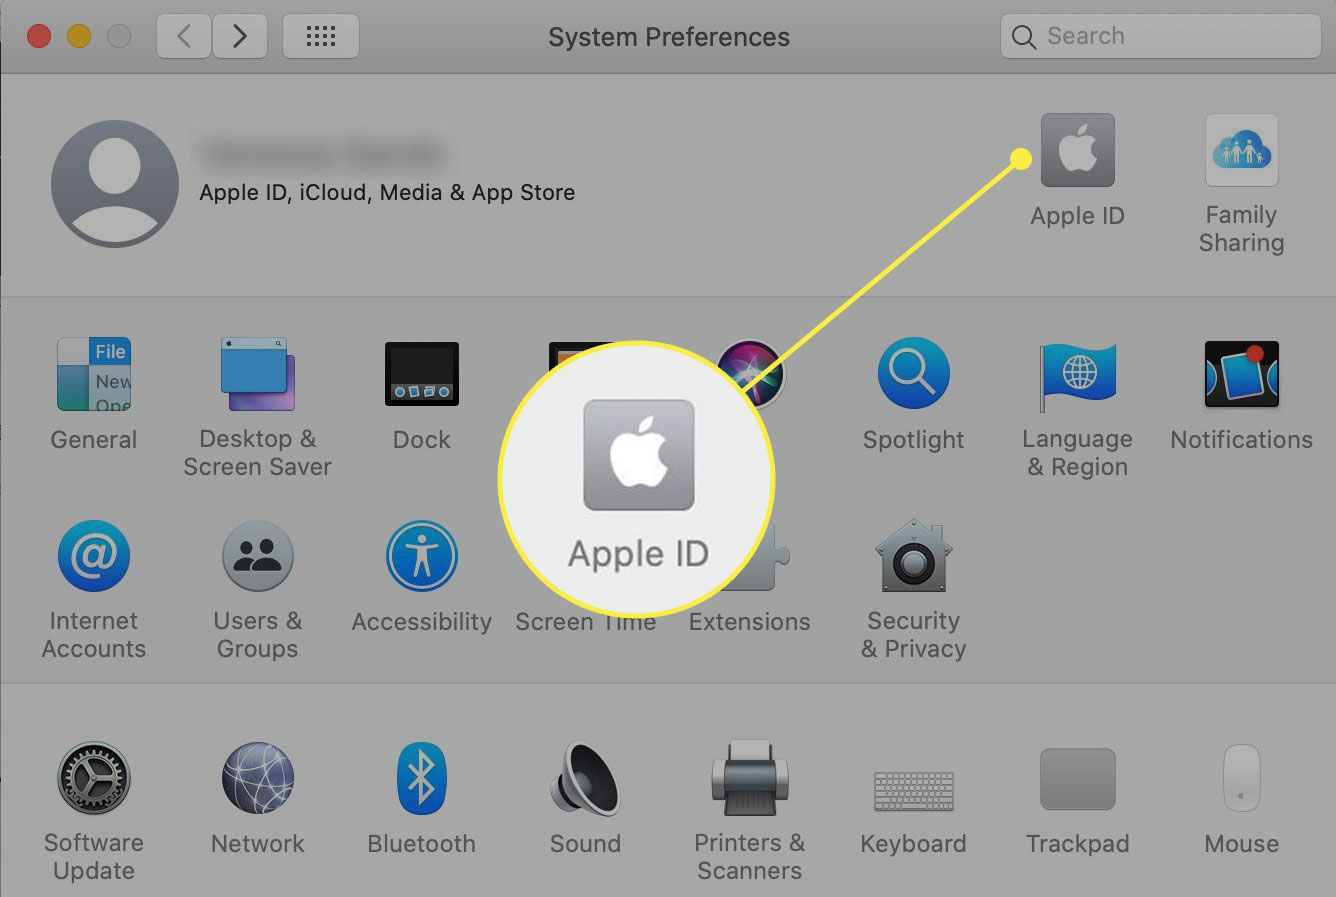 System Preferences in macOS with Apple ID highlighted